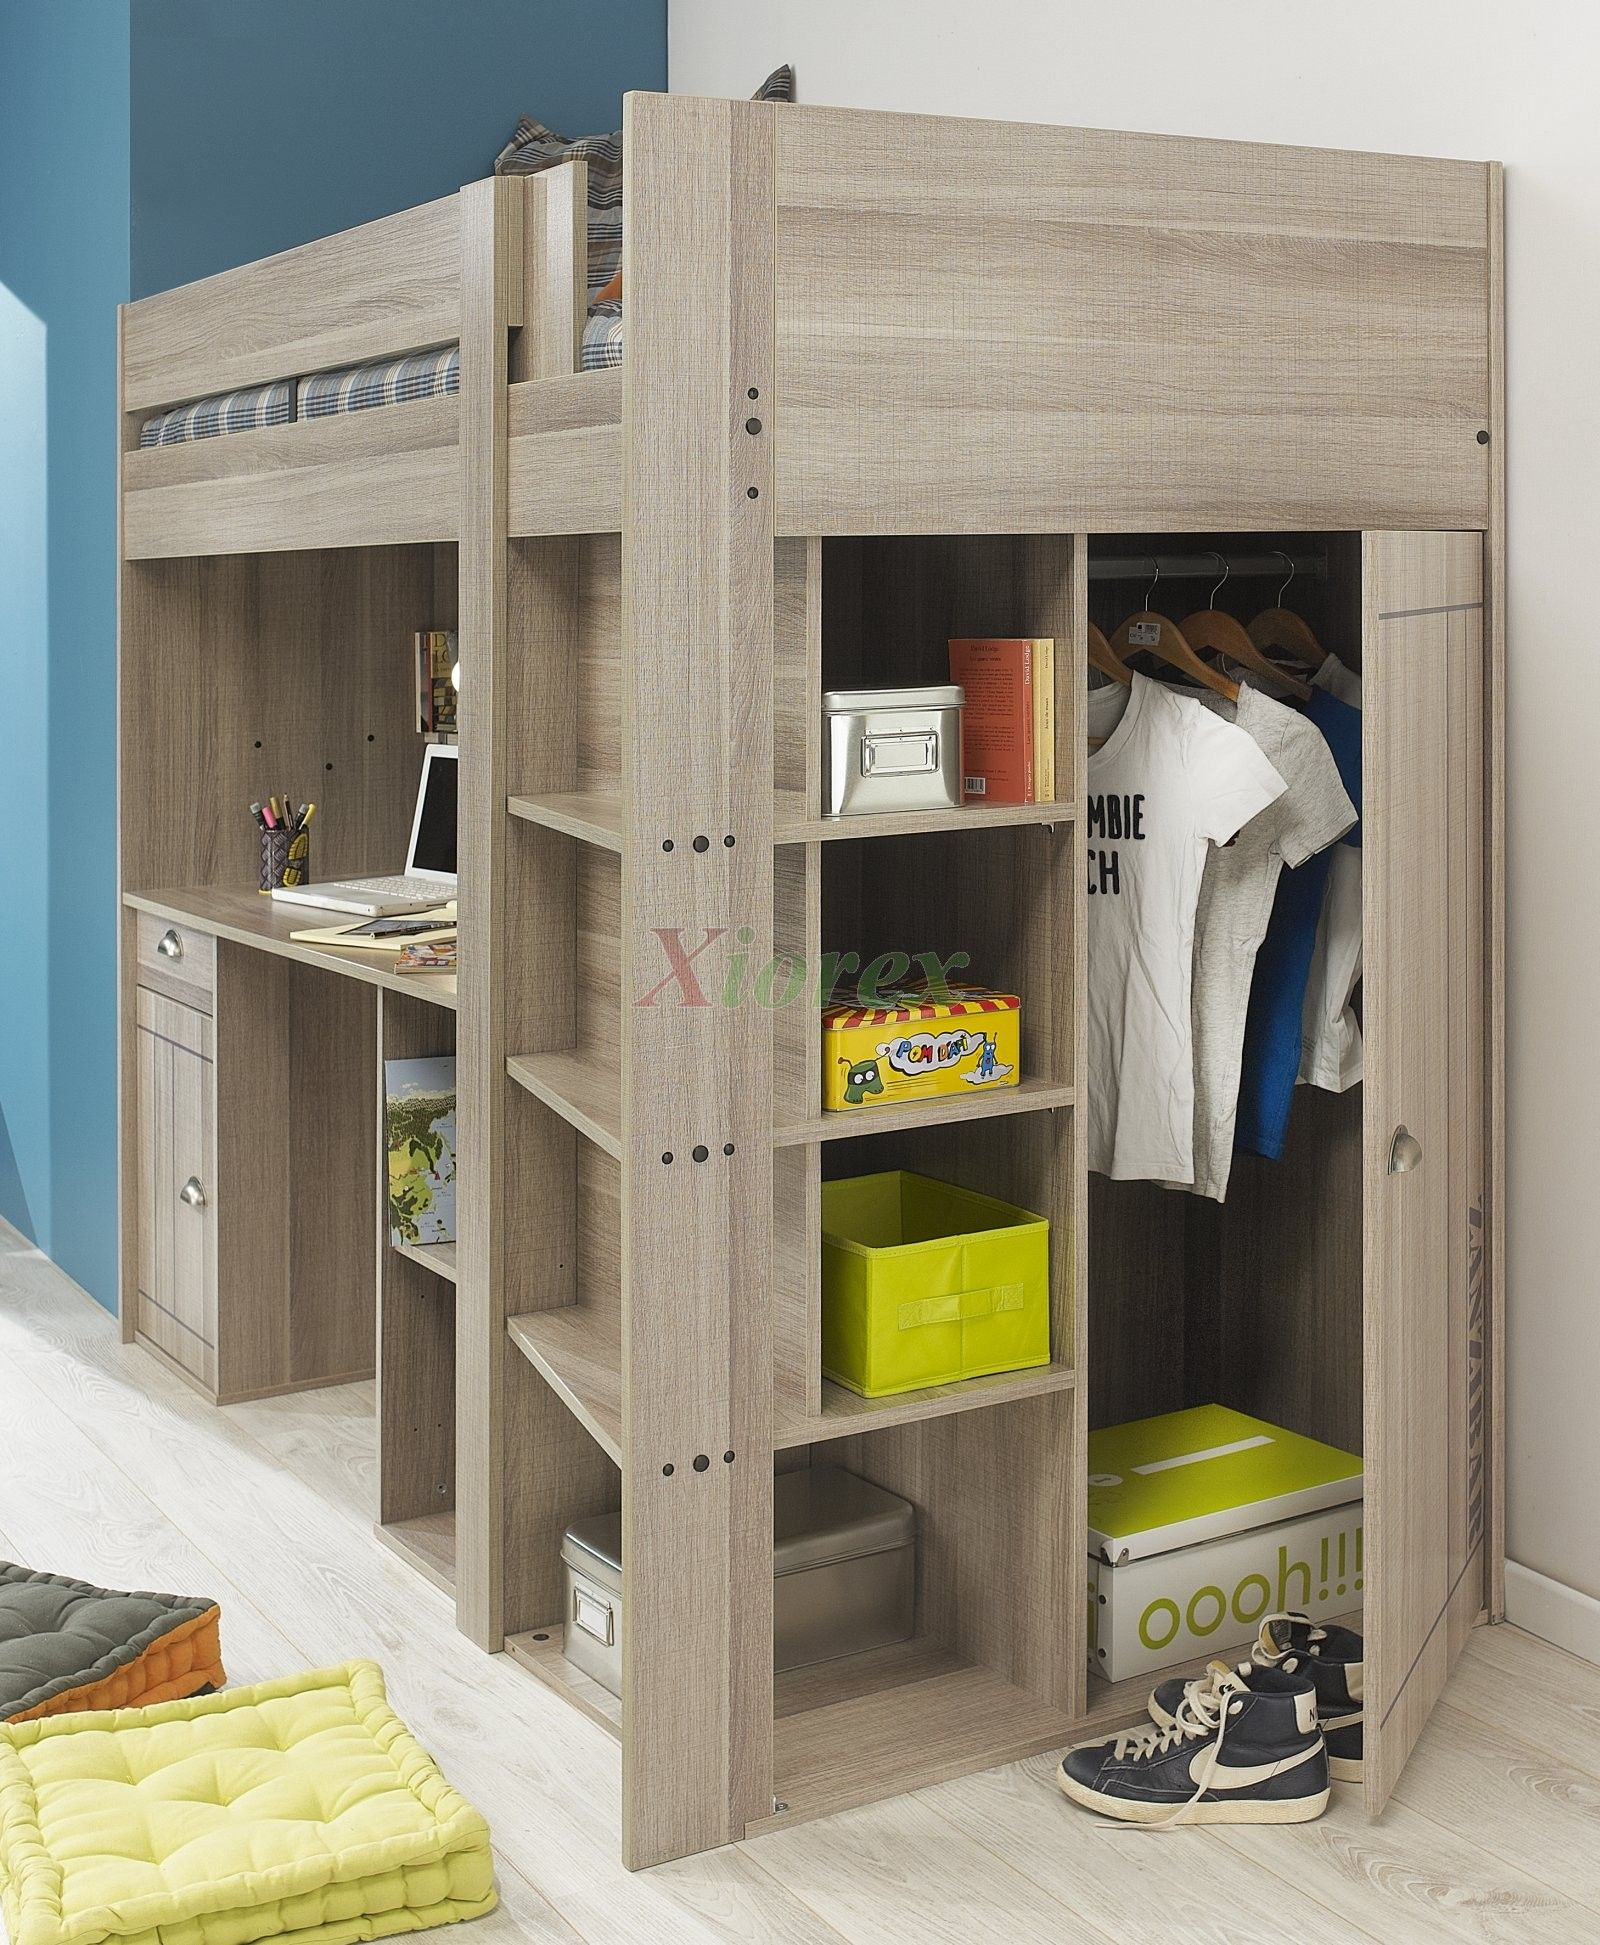 Bunk beds with desk and closet - Gami Largo Loft Beds For Teens Canada With Desk Closet Xiorex Gami Largo Teen